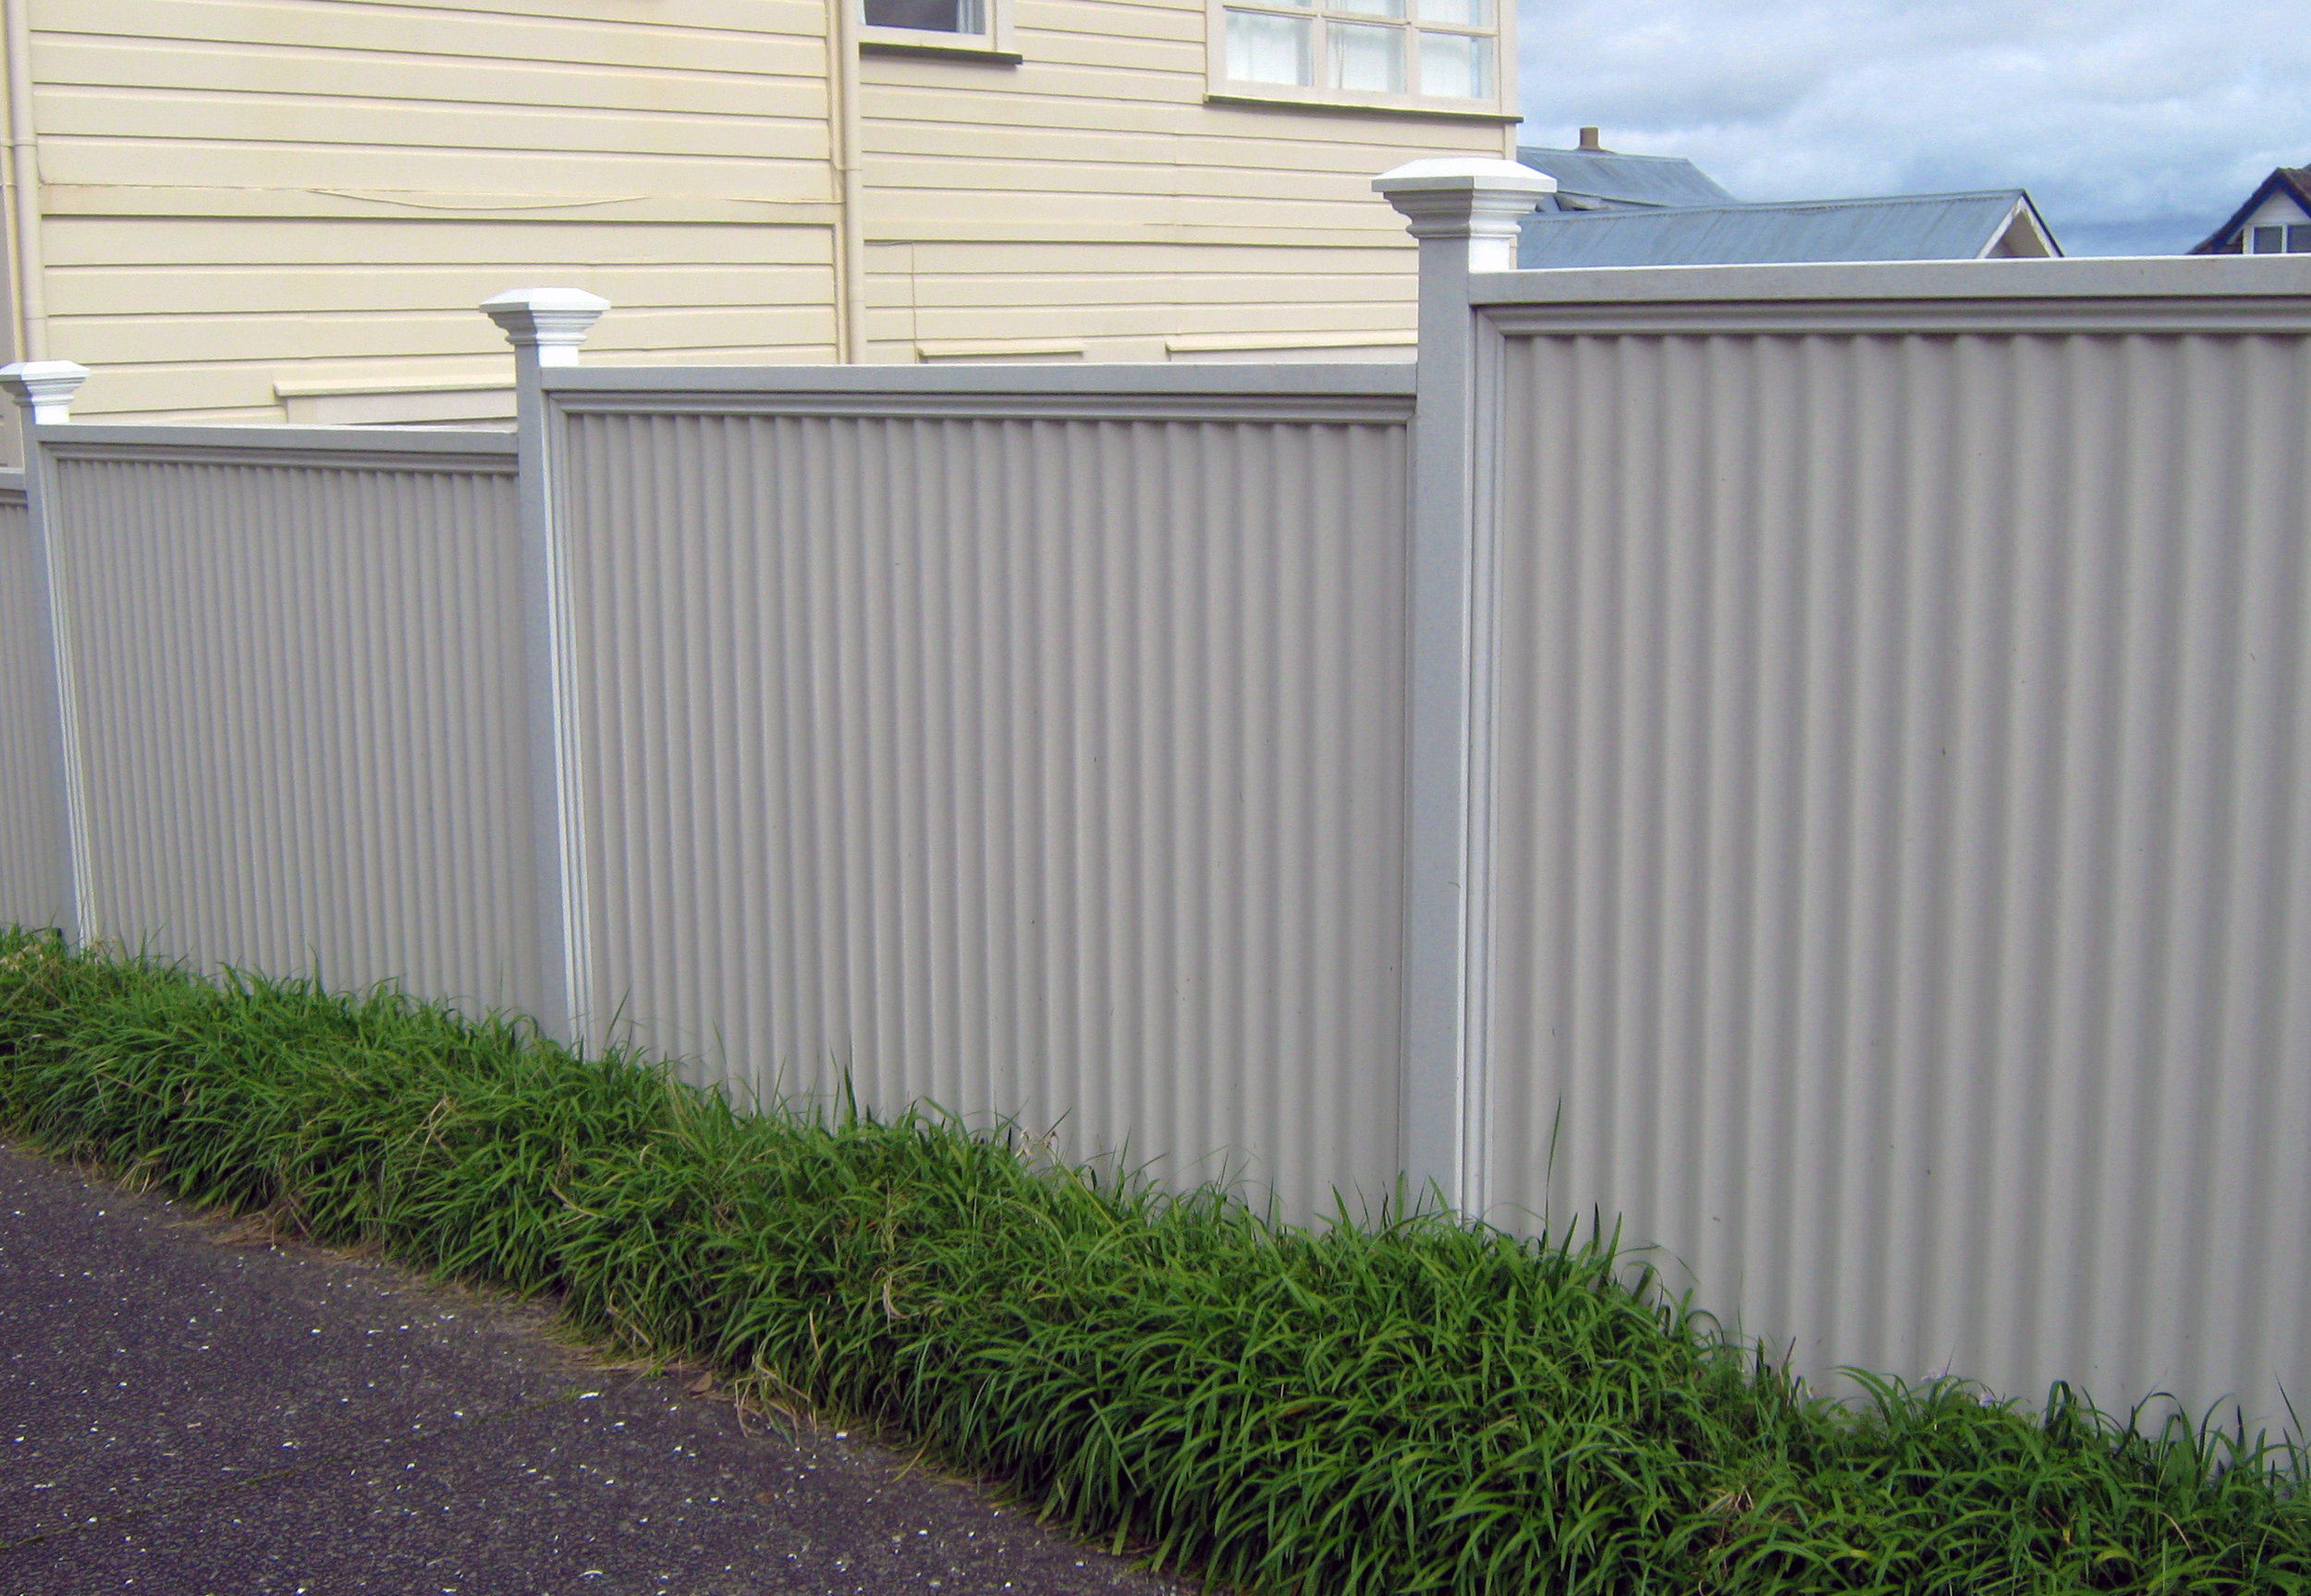 (23) Corrugated colour steel fence